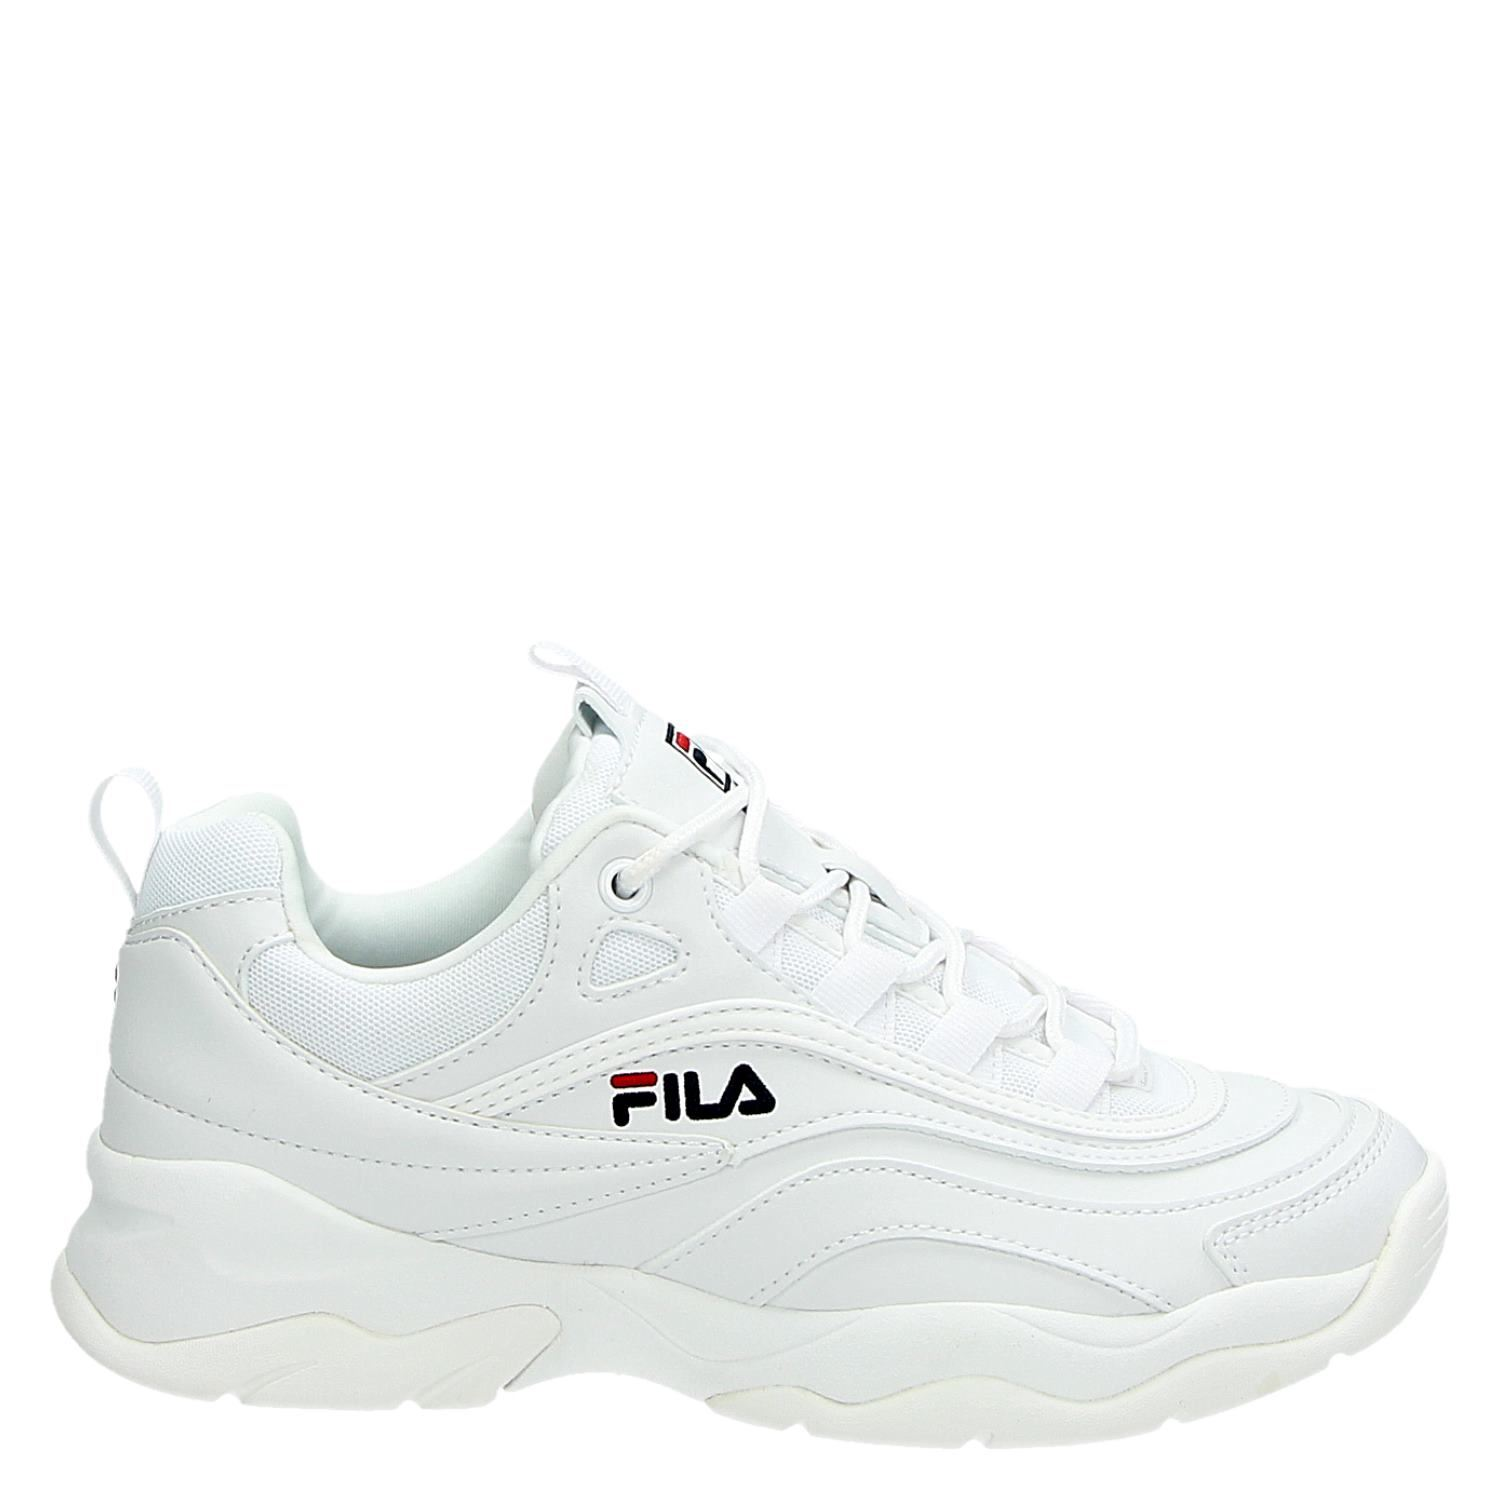 a4db8784117 Fila Ray low dames lage sneakers wit